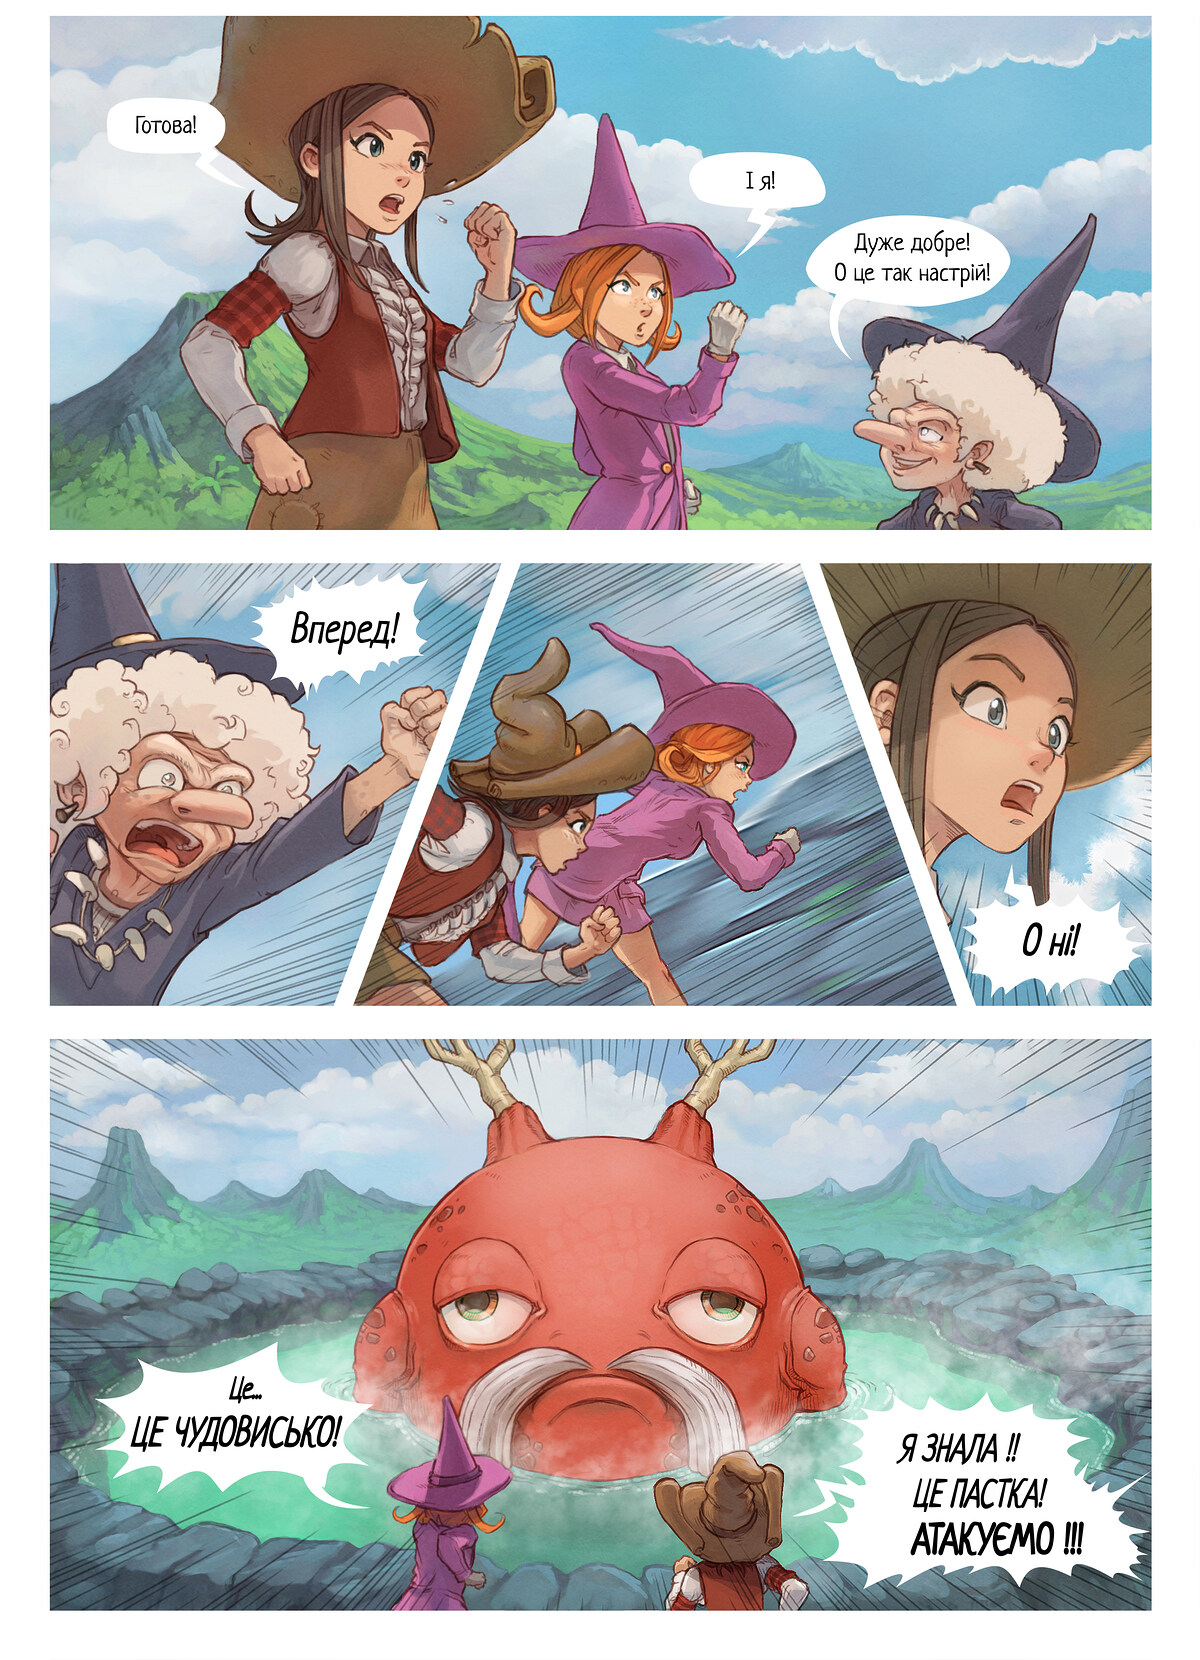 A webcomic page of Pepper&Carrot, епізод 16 [uk], стор. 5